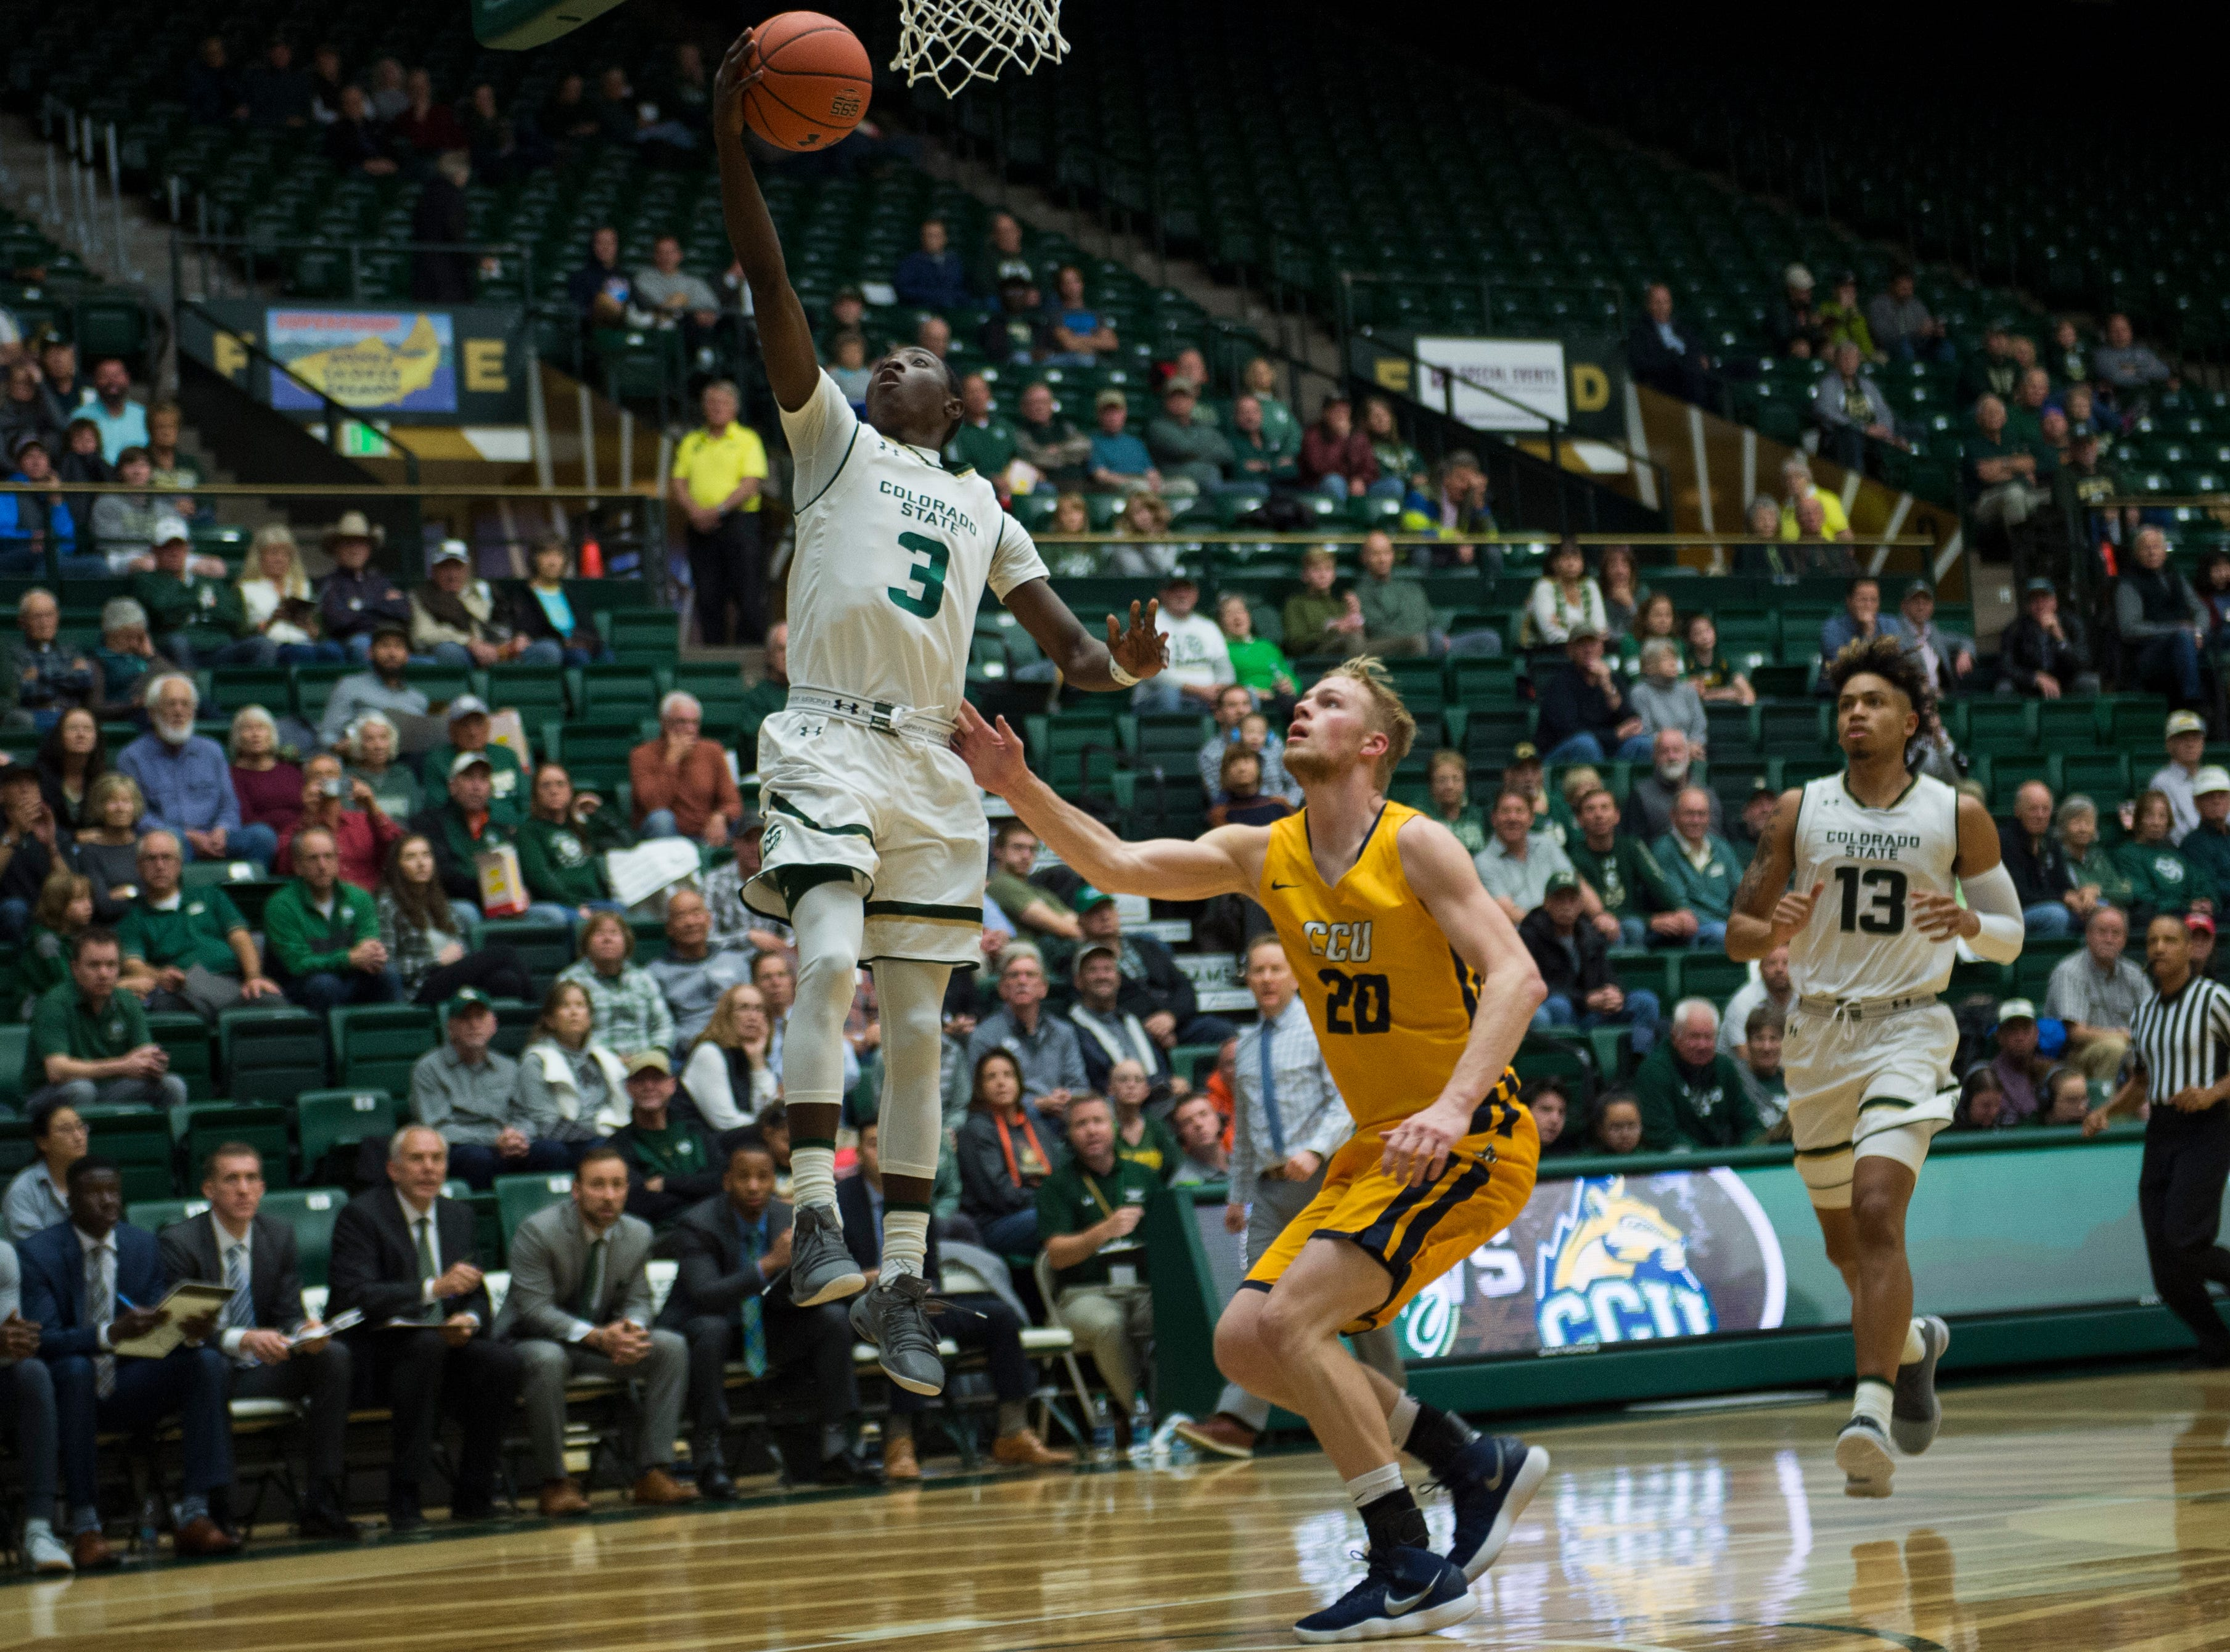 Colorado State University freshman guard Kendle Moore (3) puts a shot up past Colorado Christian University sophomore guard Justin Engesser (20) on Wednesday, Nov. 7, 2018, at Moby Arena in Fort Collins, Colo.